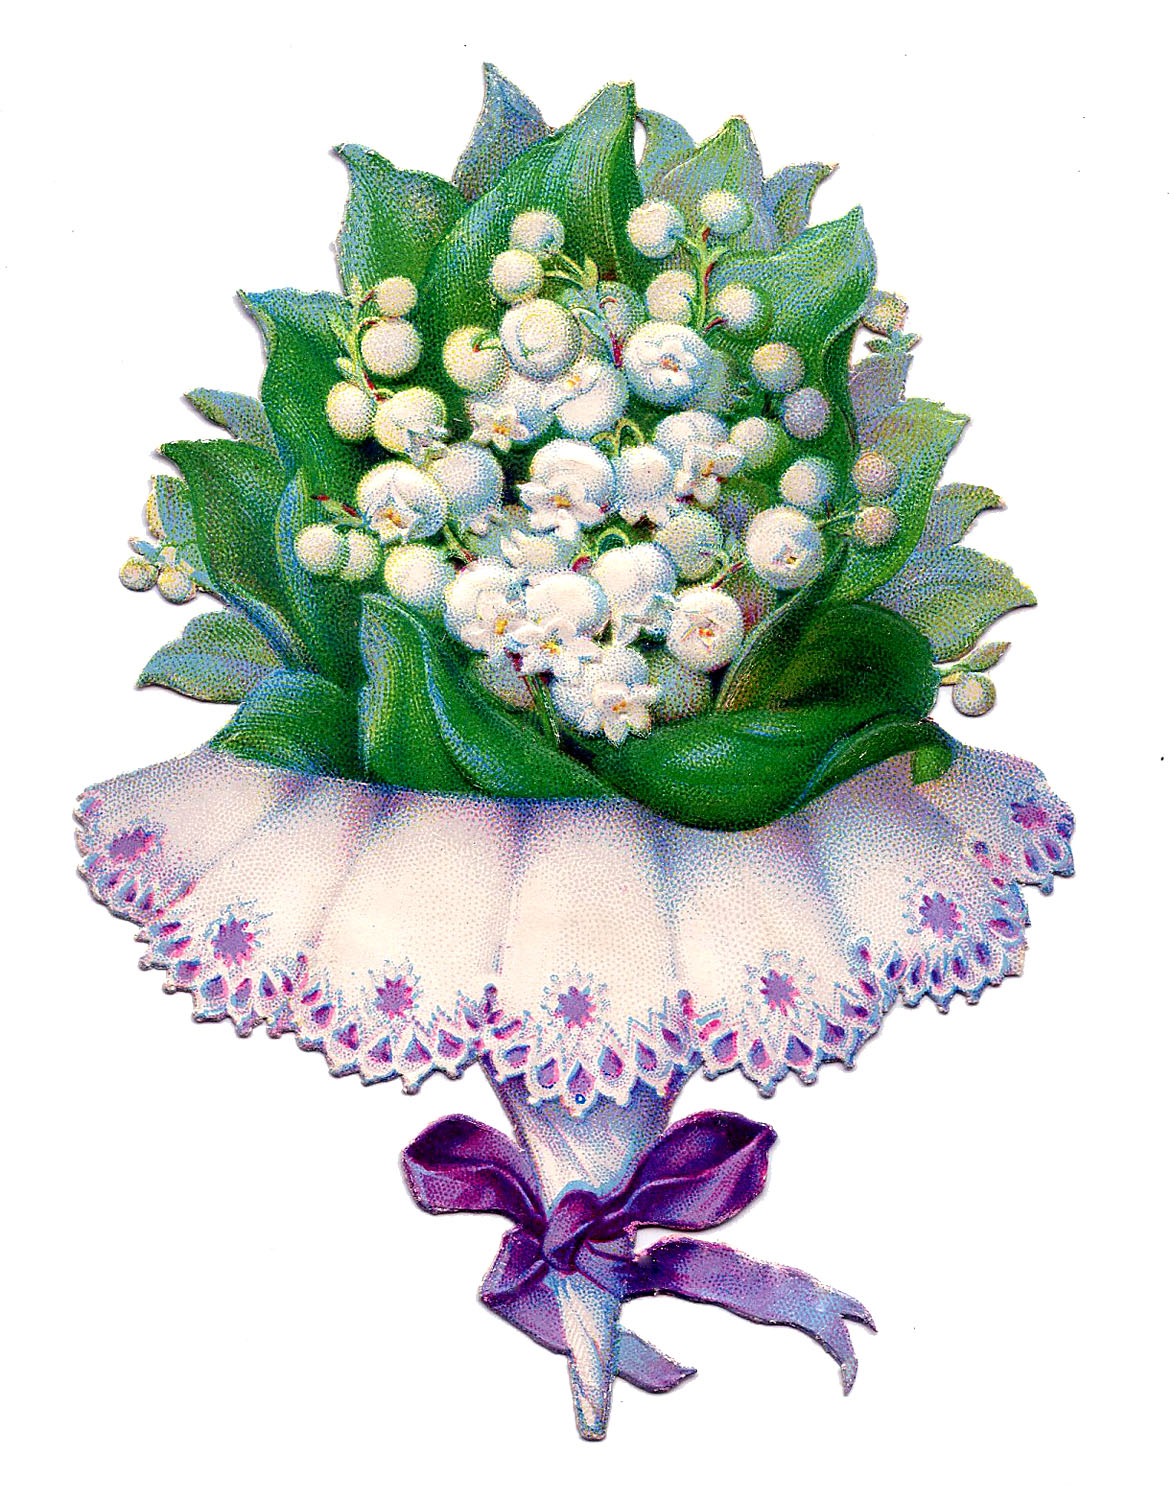 Tussy Mussy Lily Bouquet